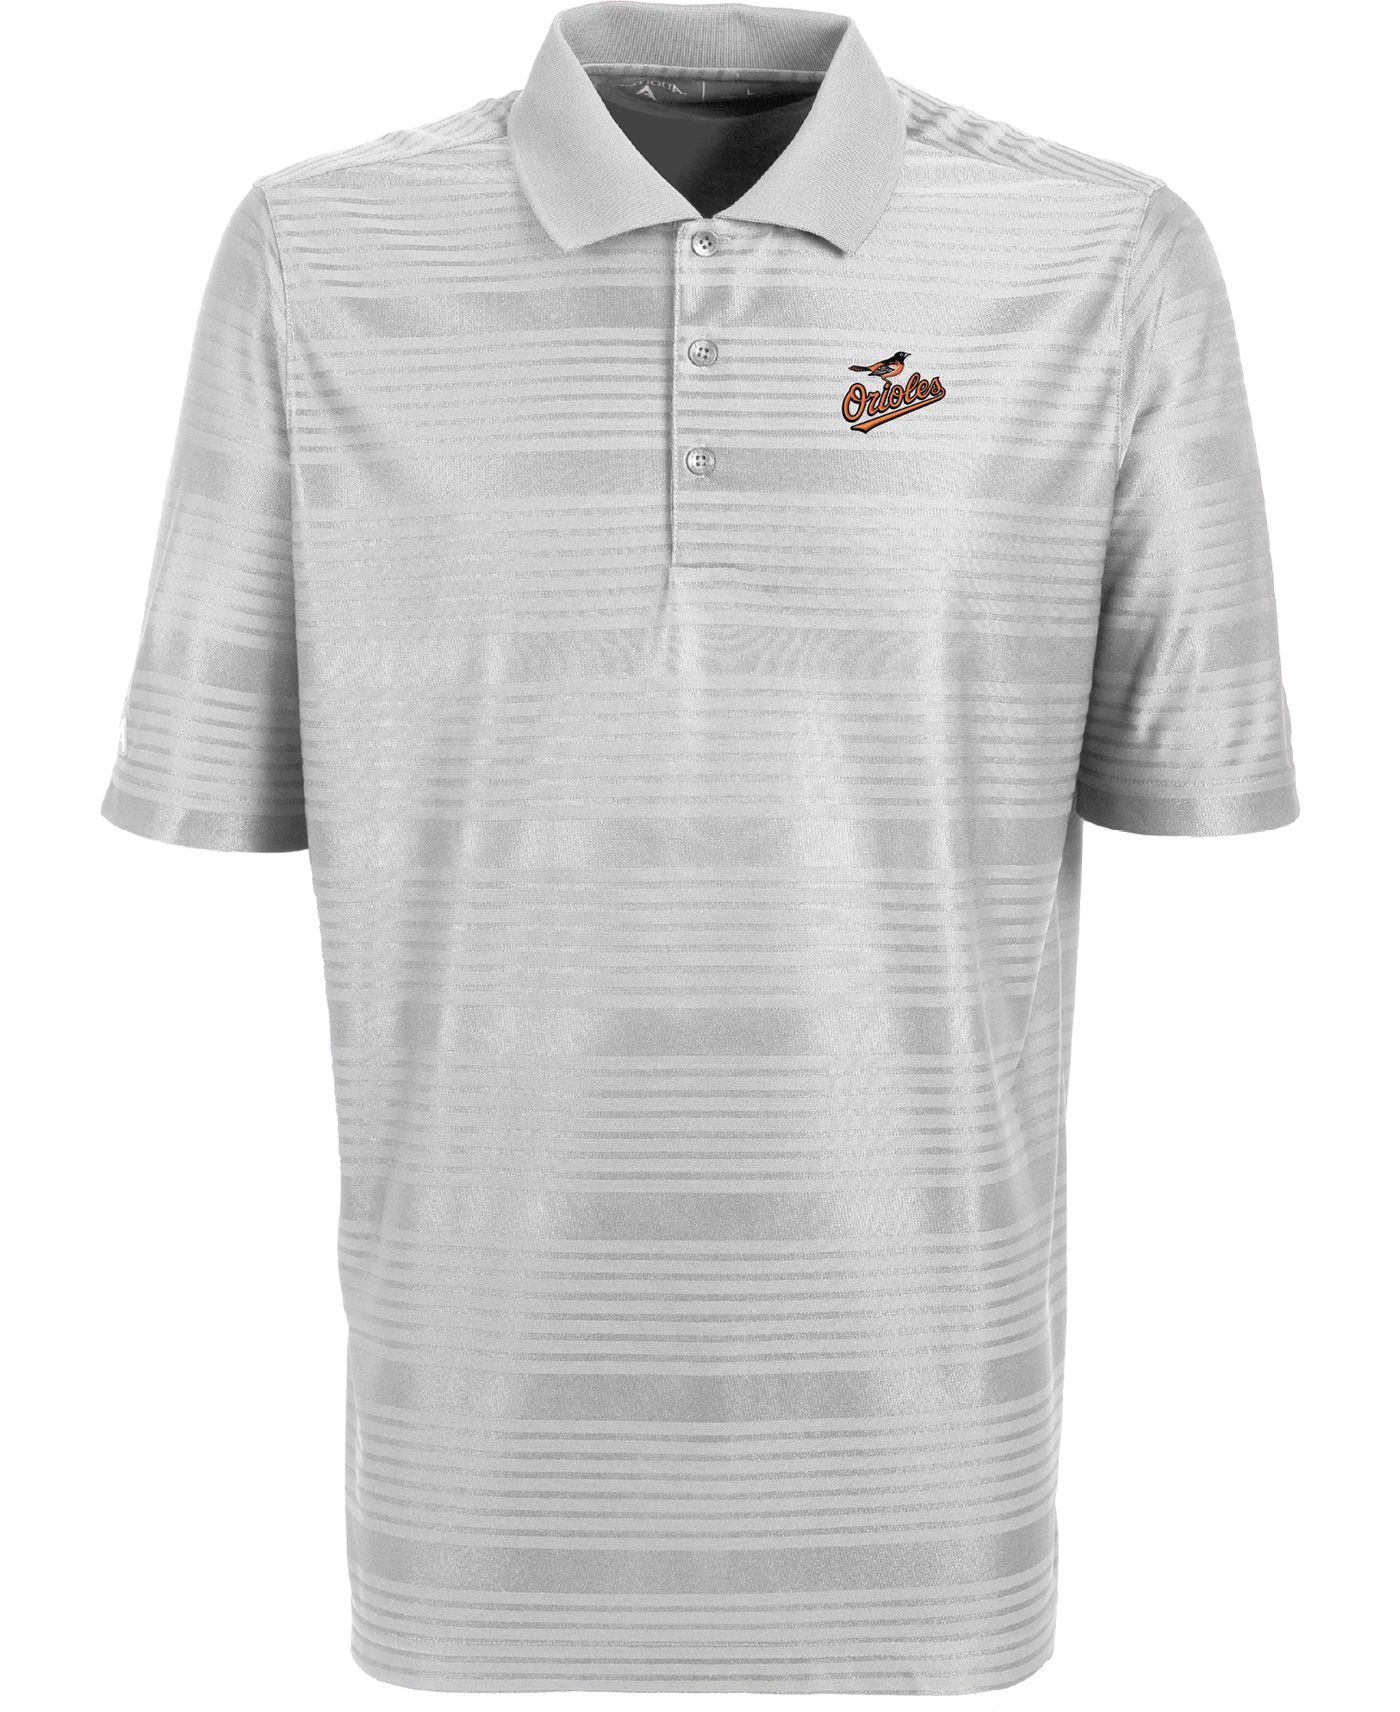 Antigua Men's Baltimore Orioles Illusion White Striped Performance Polo